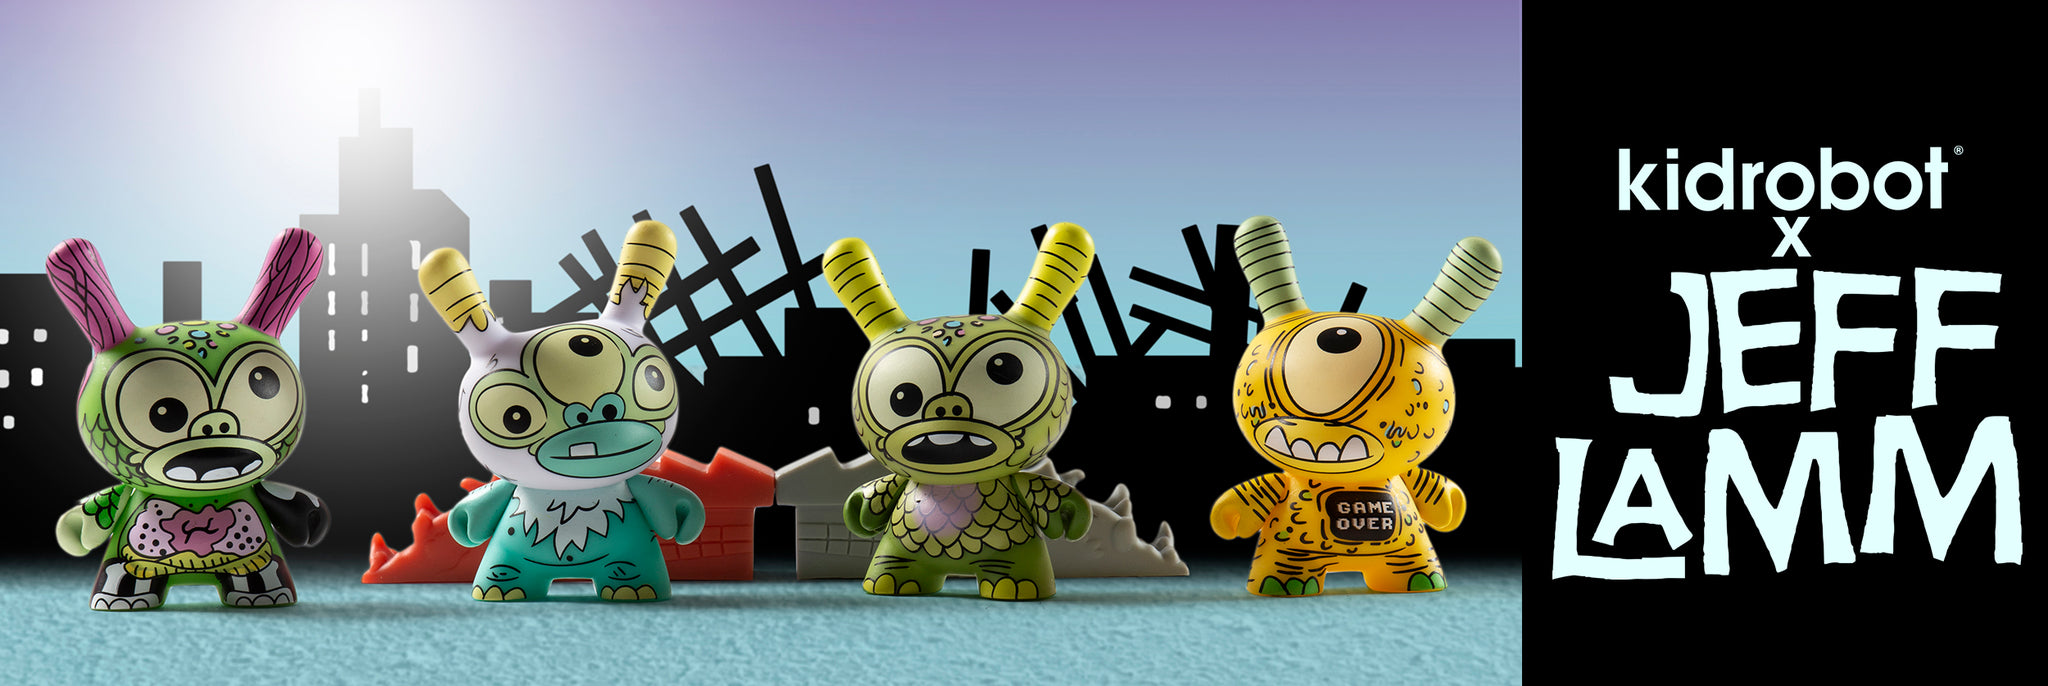 Jeff Lamm Art Toys, Dunny Designs & Art by Kidrobot